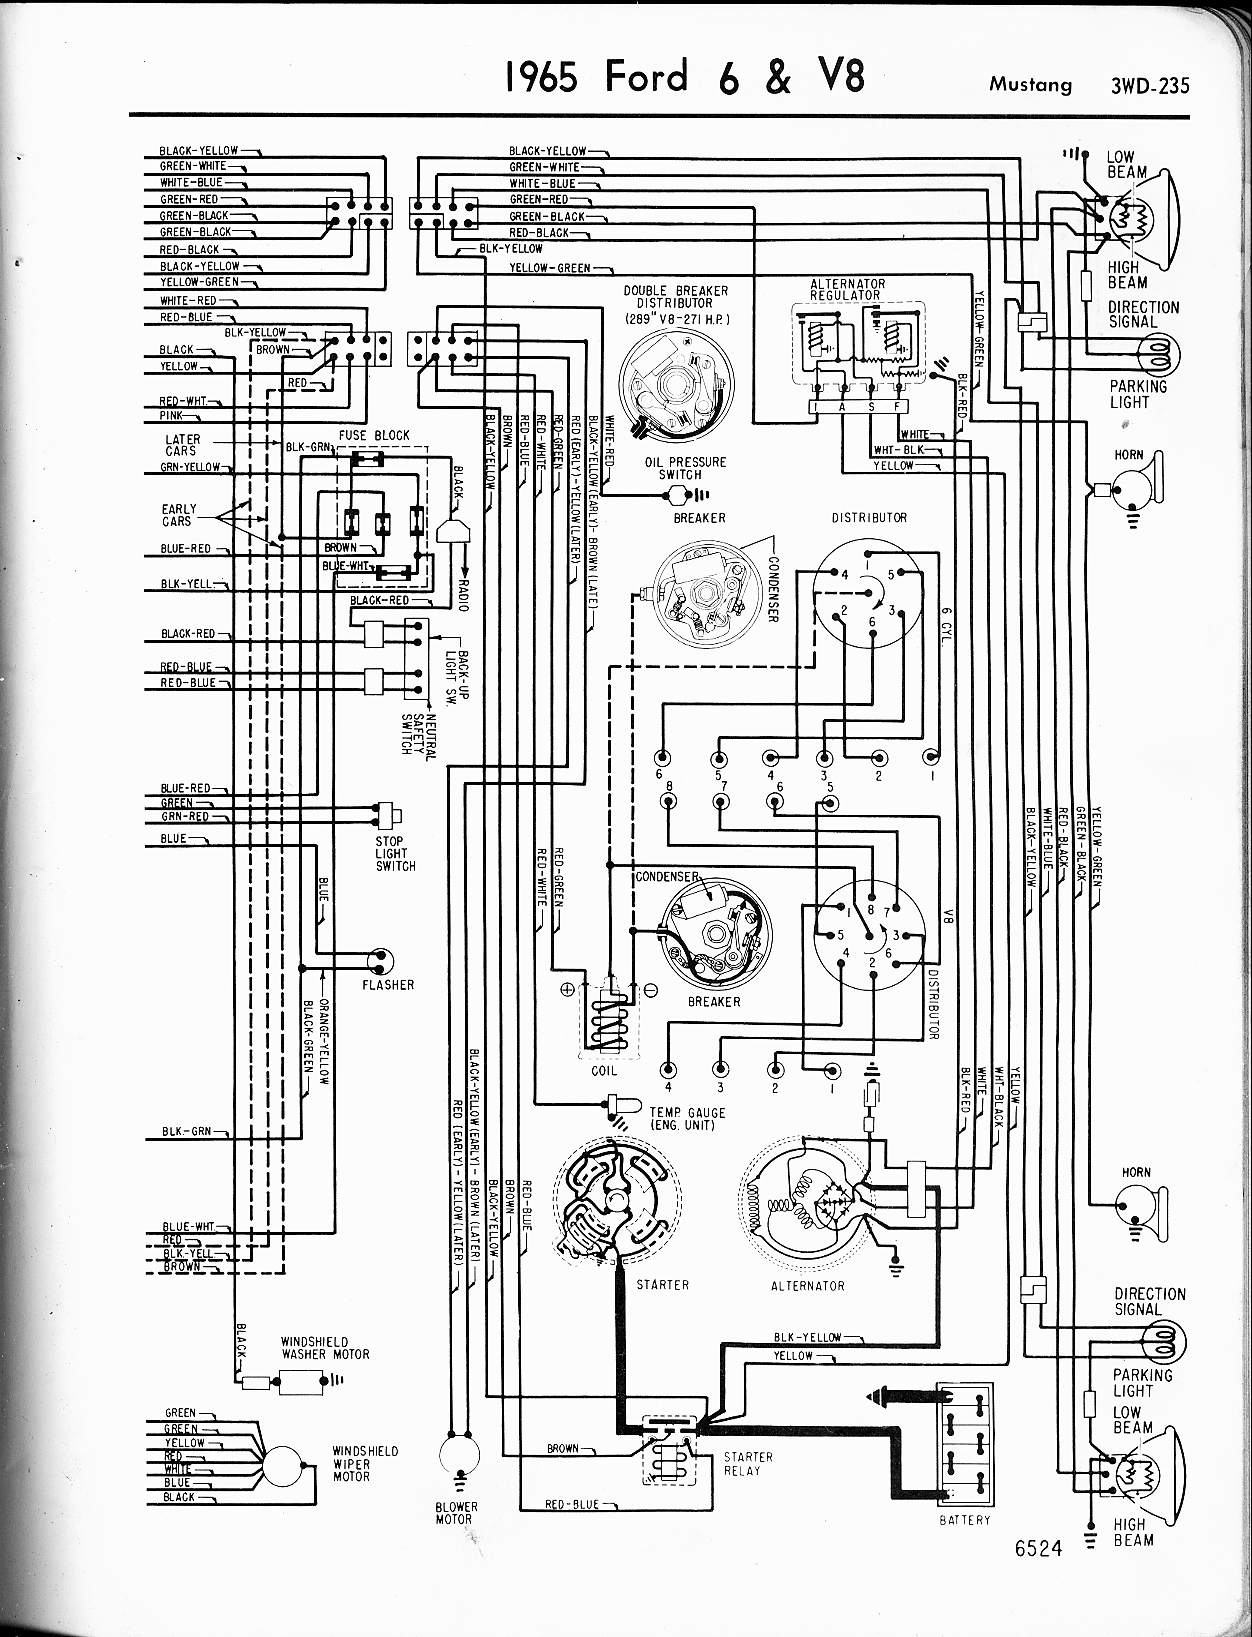 Ford Diagrams Drawing Electrical Wiring Related Pictures The 65 Mustang Diagram 2 B